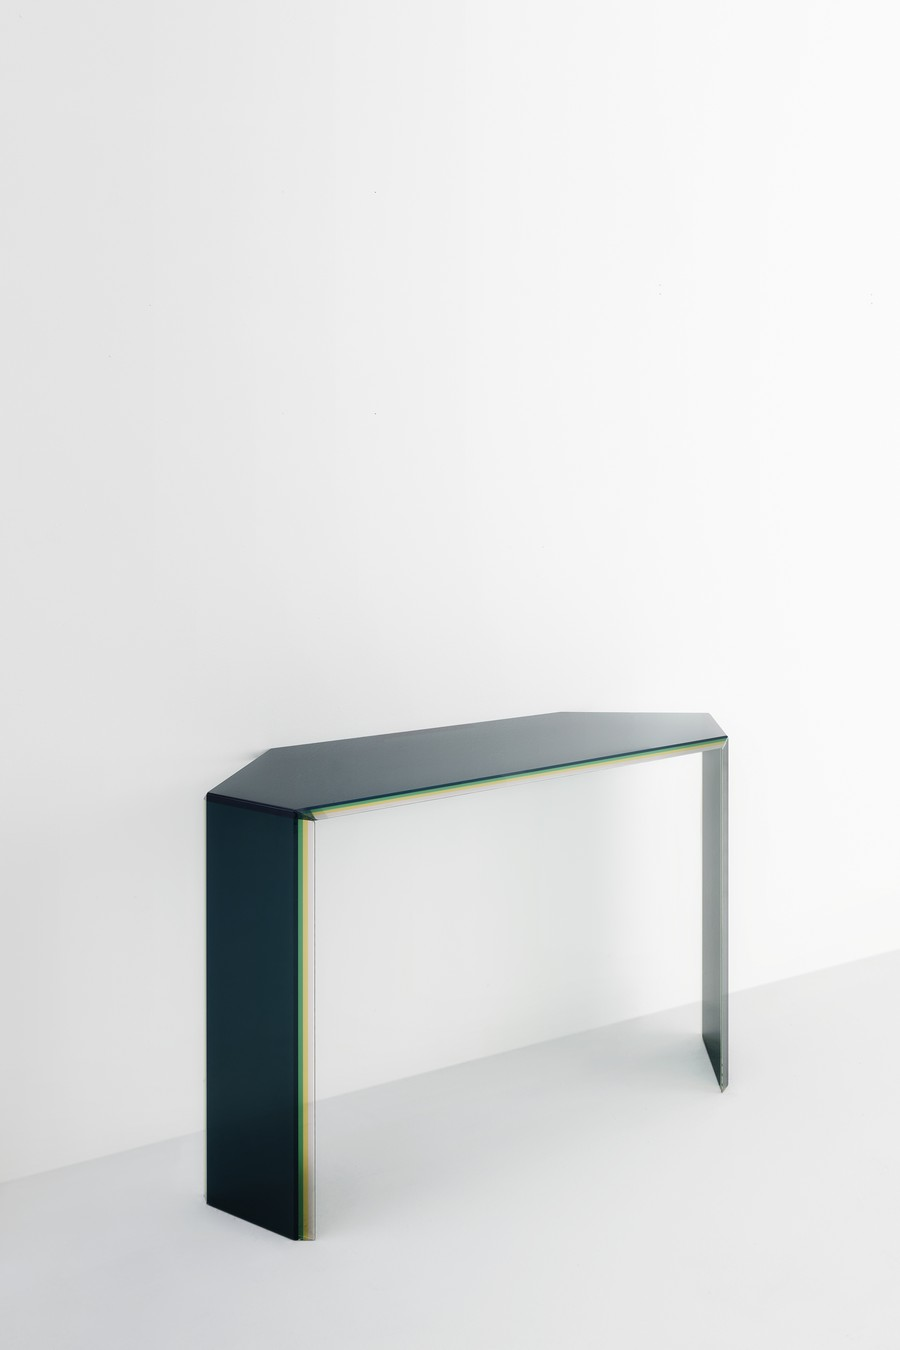 milan design week Milan Design Week: the novelties from some top brands (Part 1) BISEL console PatriciaUrquiola 02